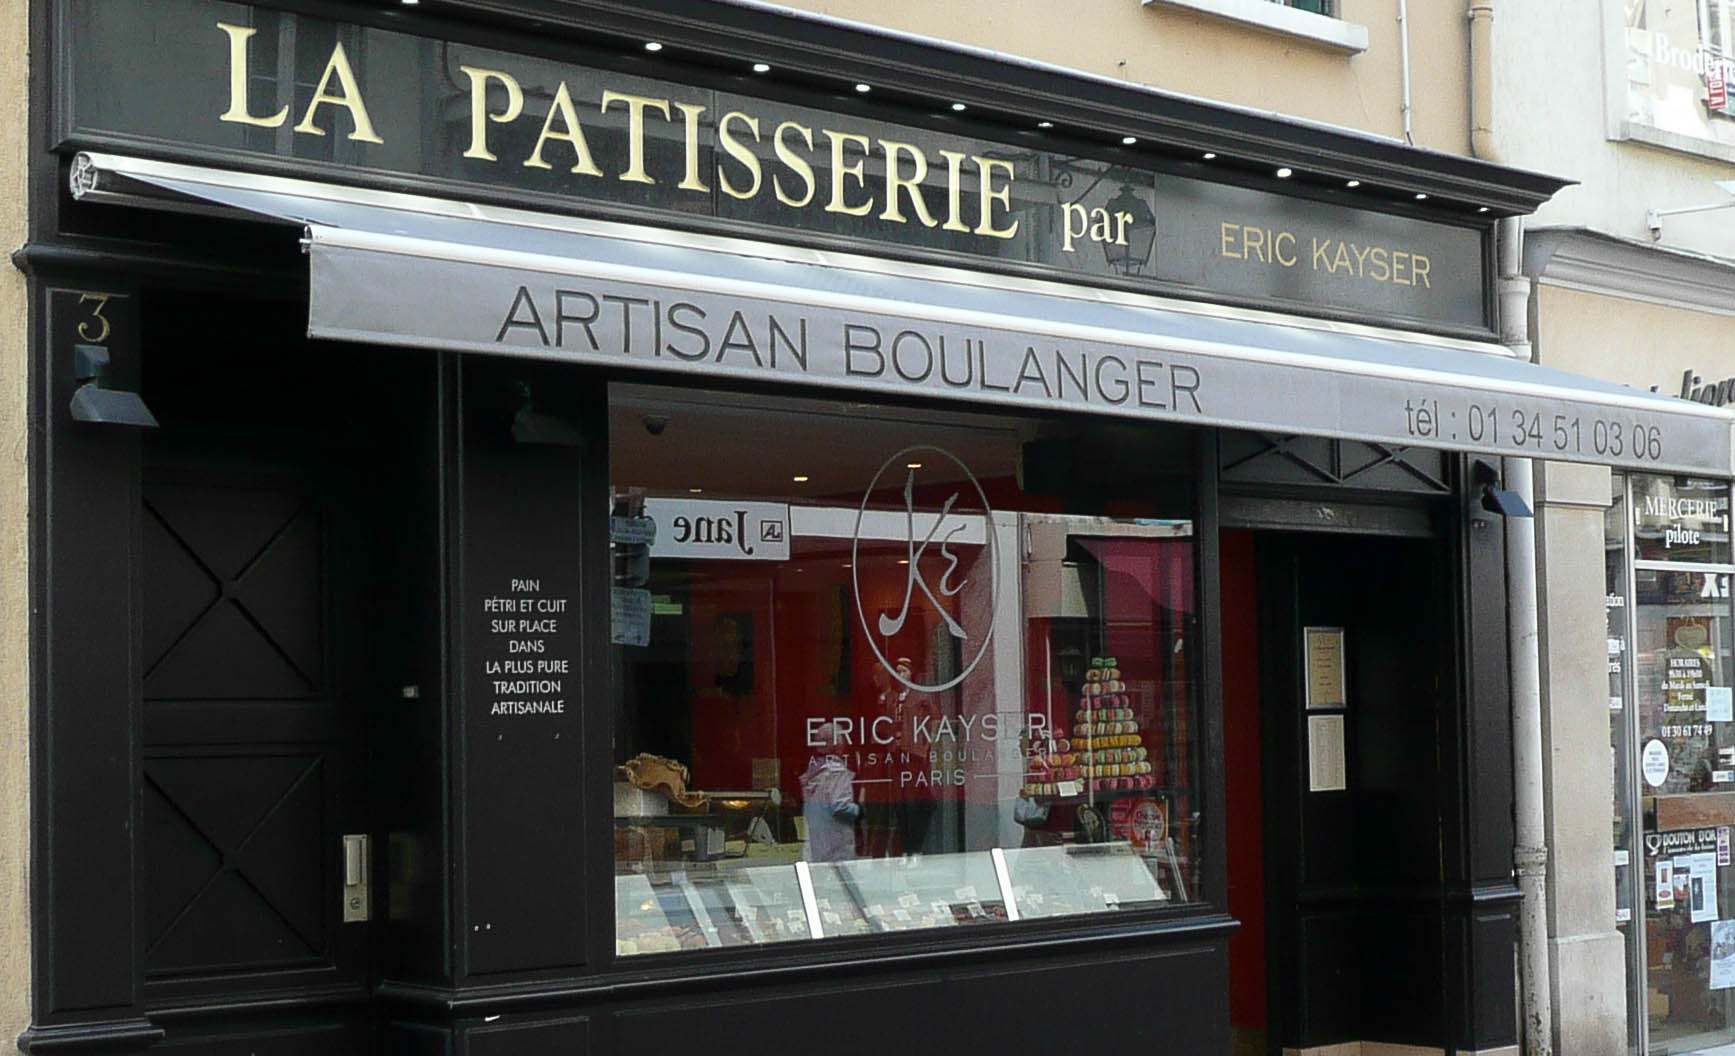 Patissier chocolatier saint germain en laye